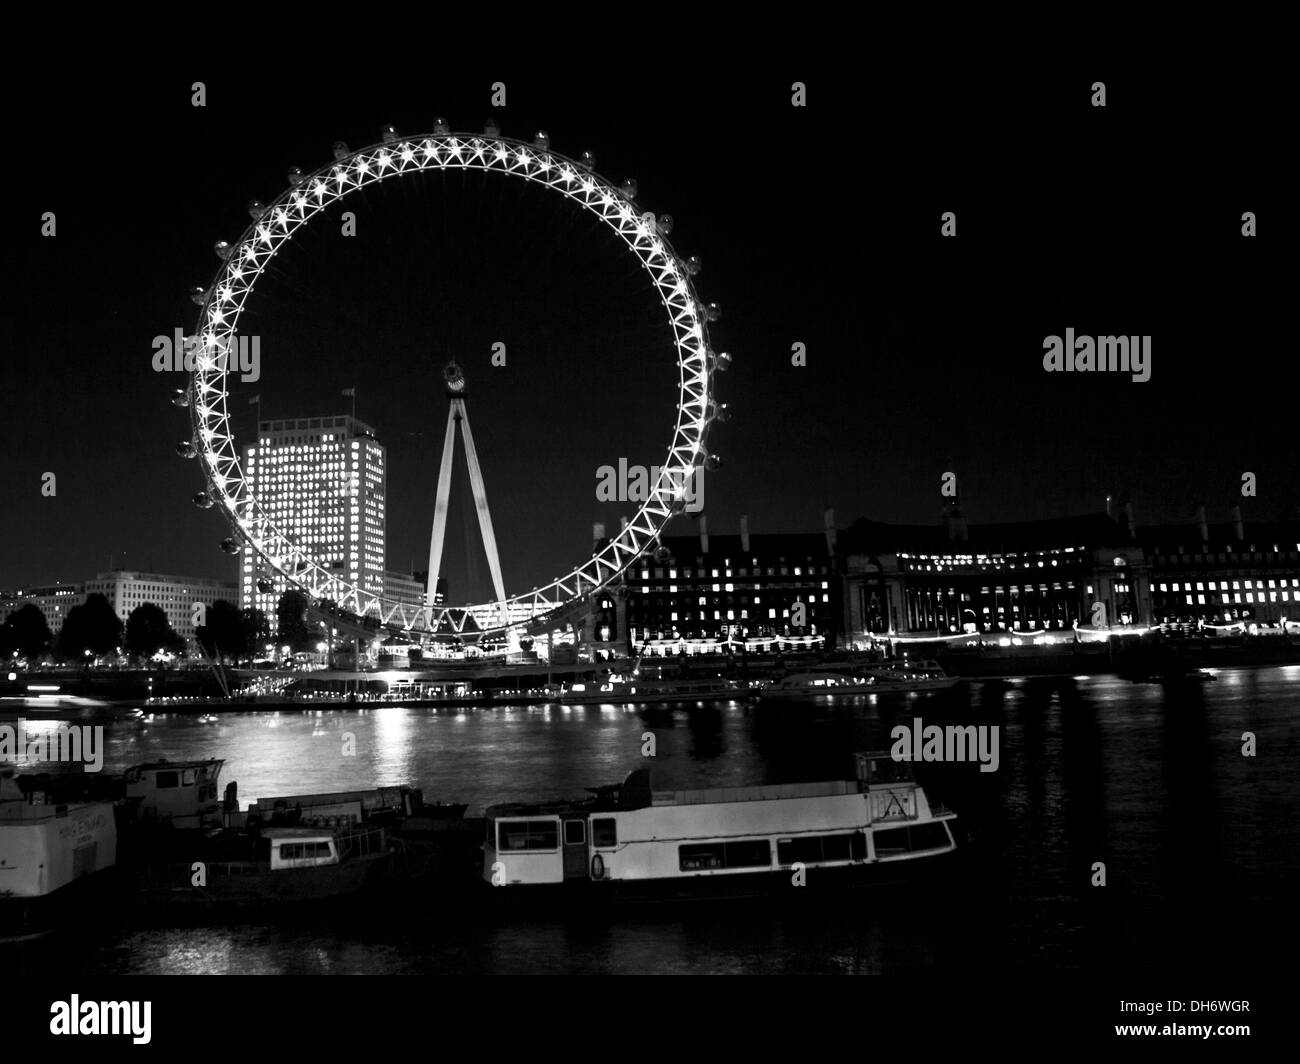 The London Eye and River Thames at night, City of Westminster, London, England, United Kingdom - Stock Image